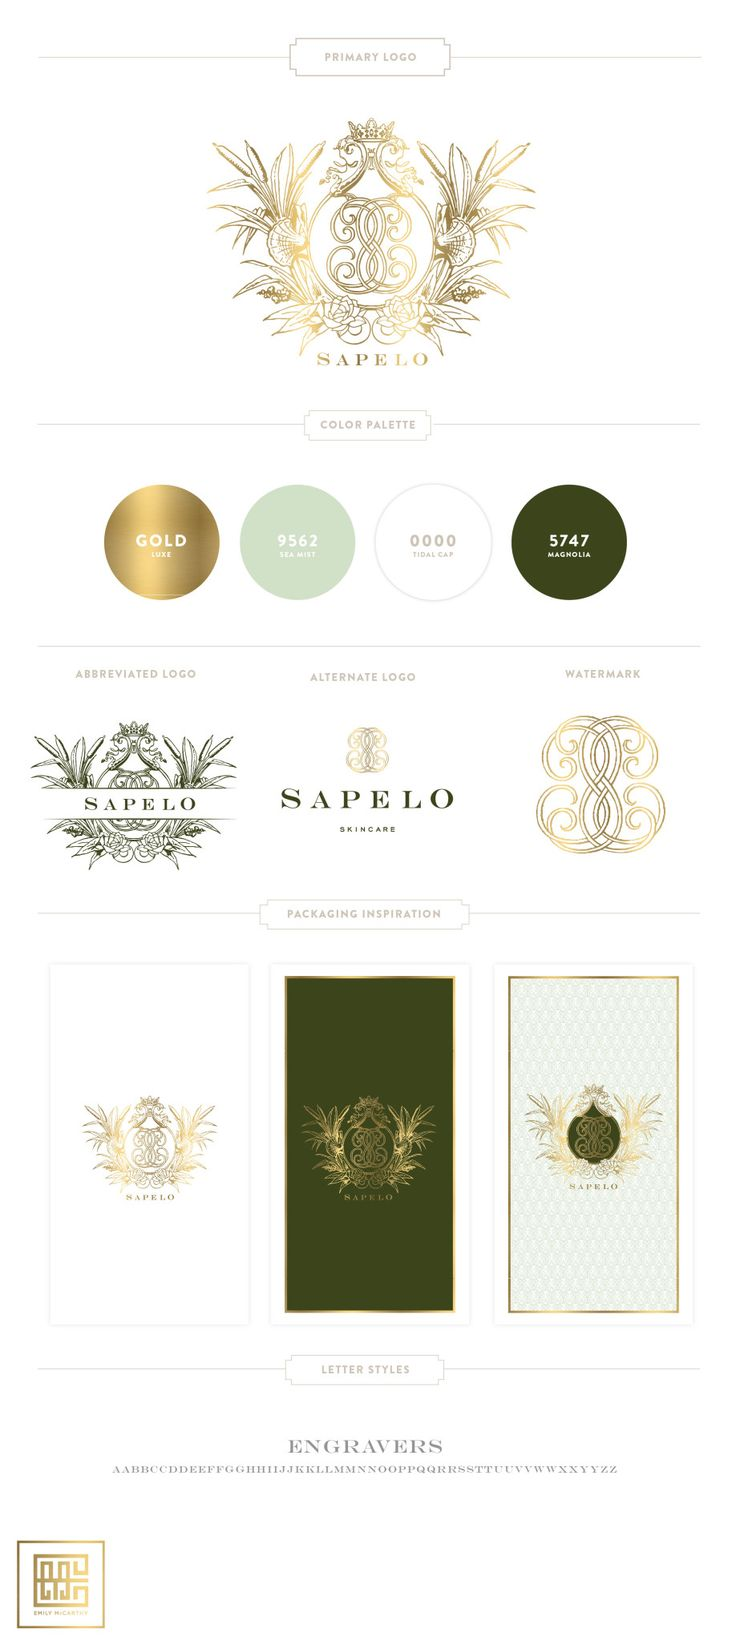 Brand design consulting logos brand board and for Luxury design consultancy